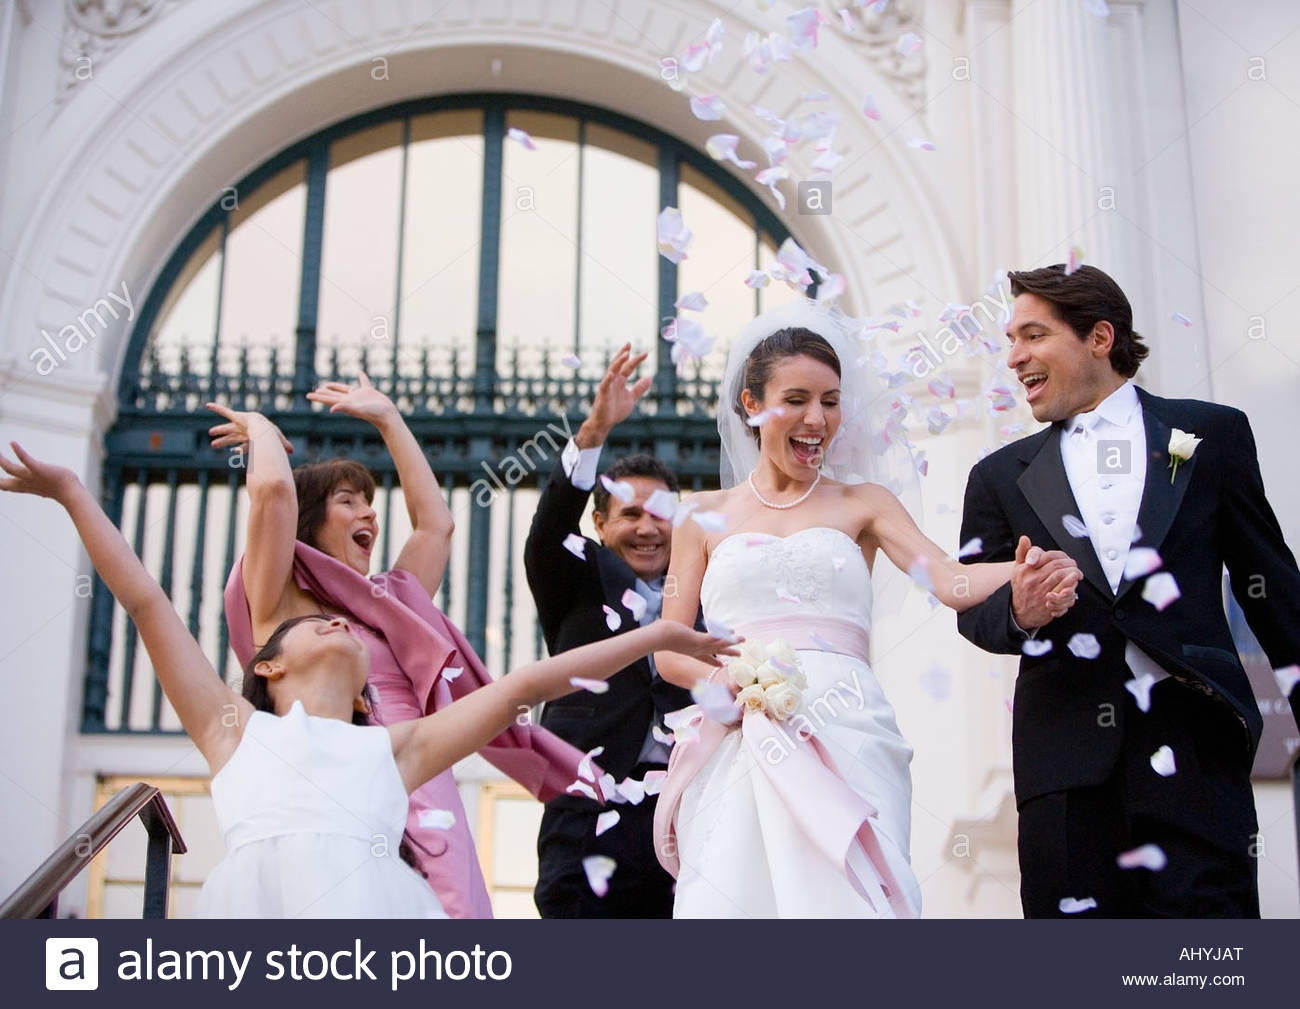 Bride and groom descending steps outside church, wedding guests throwing confetti, smiling, low angle view - Stock Image